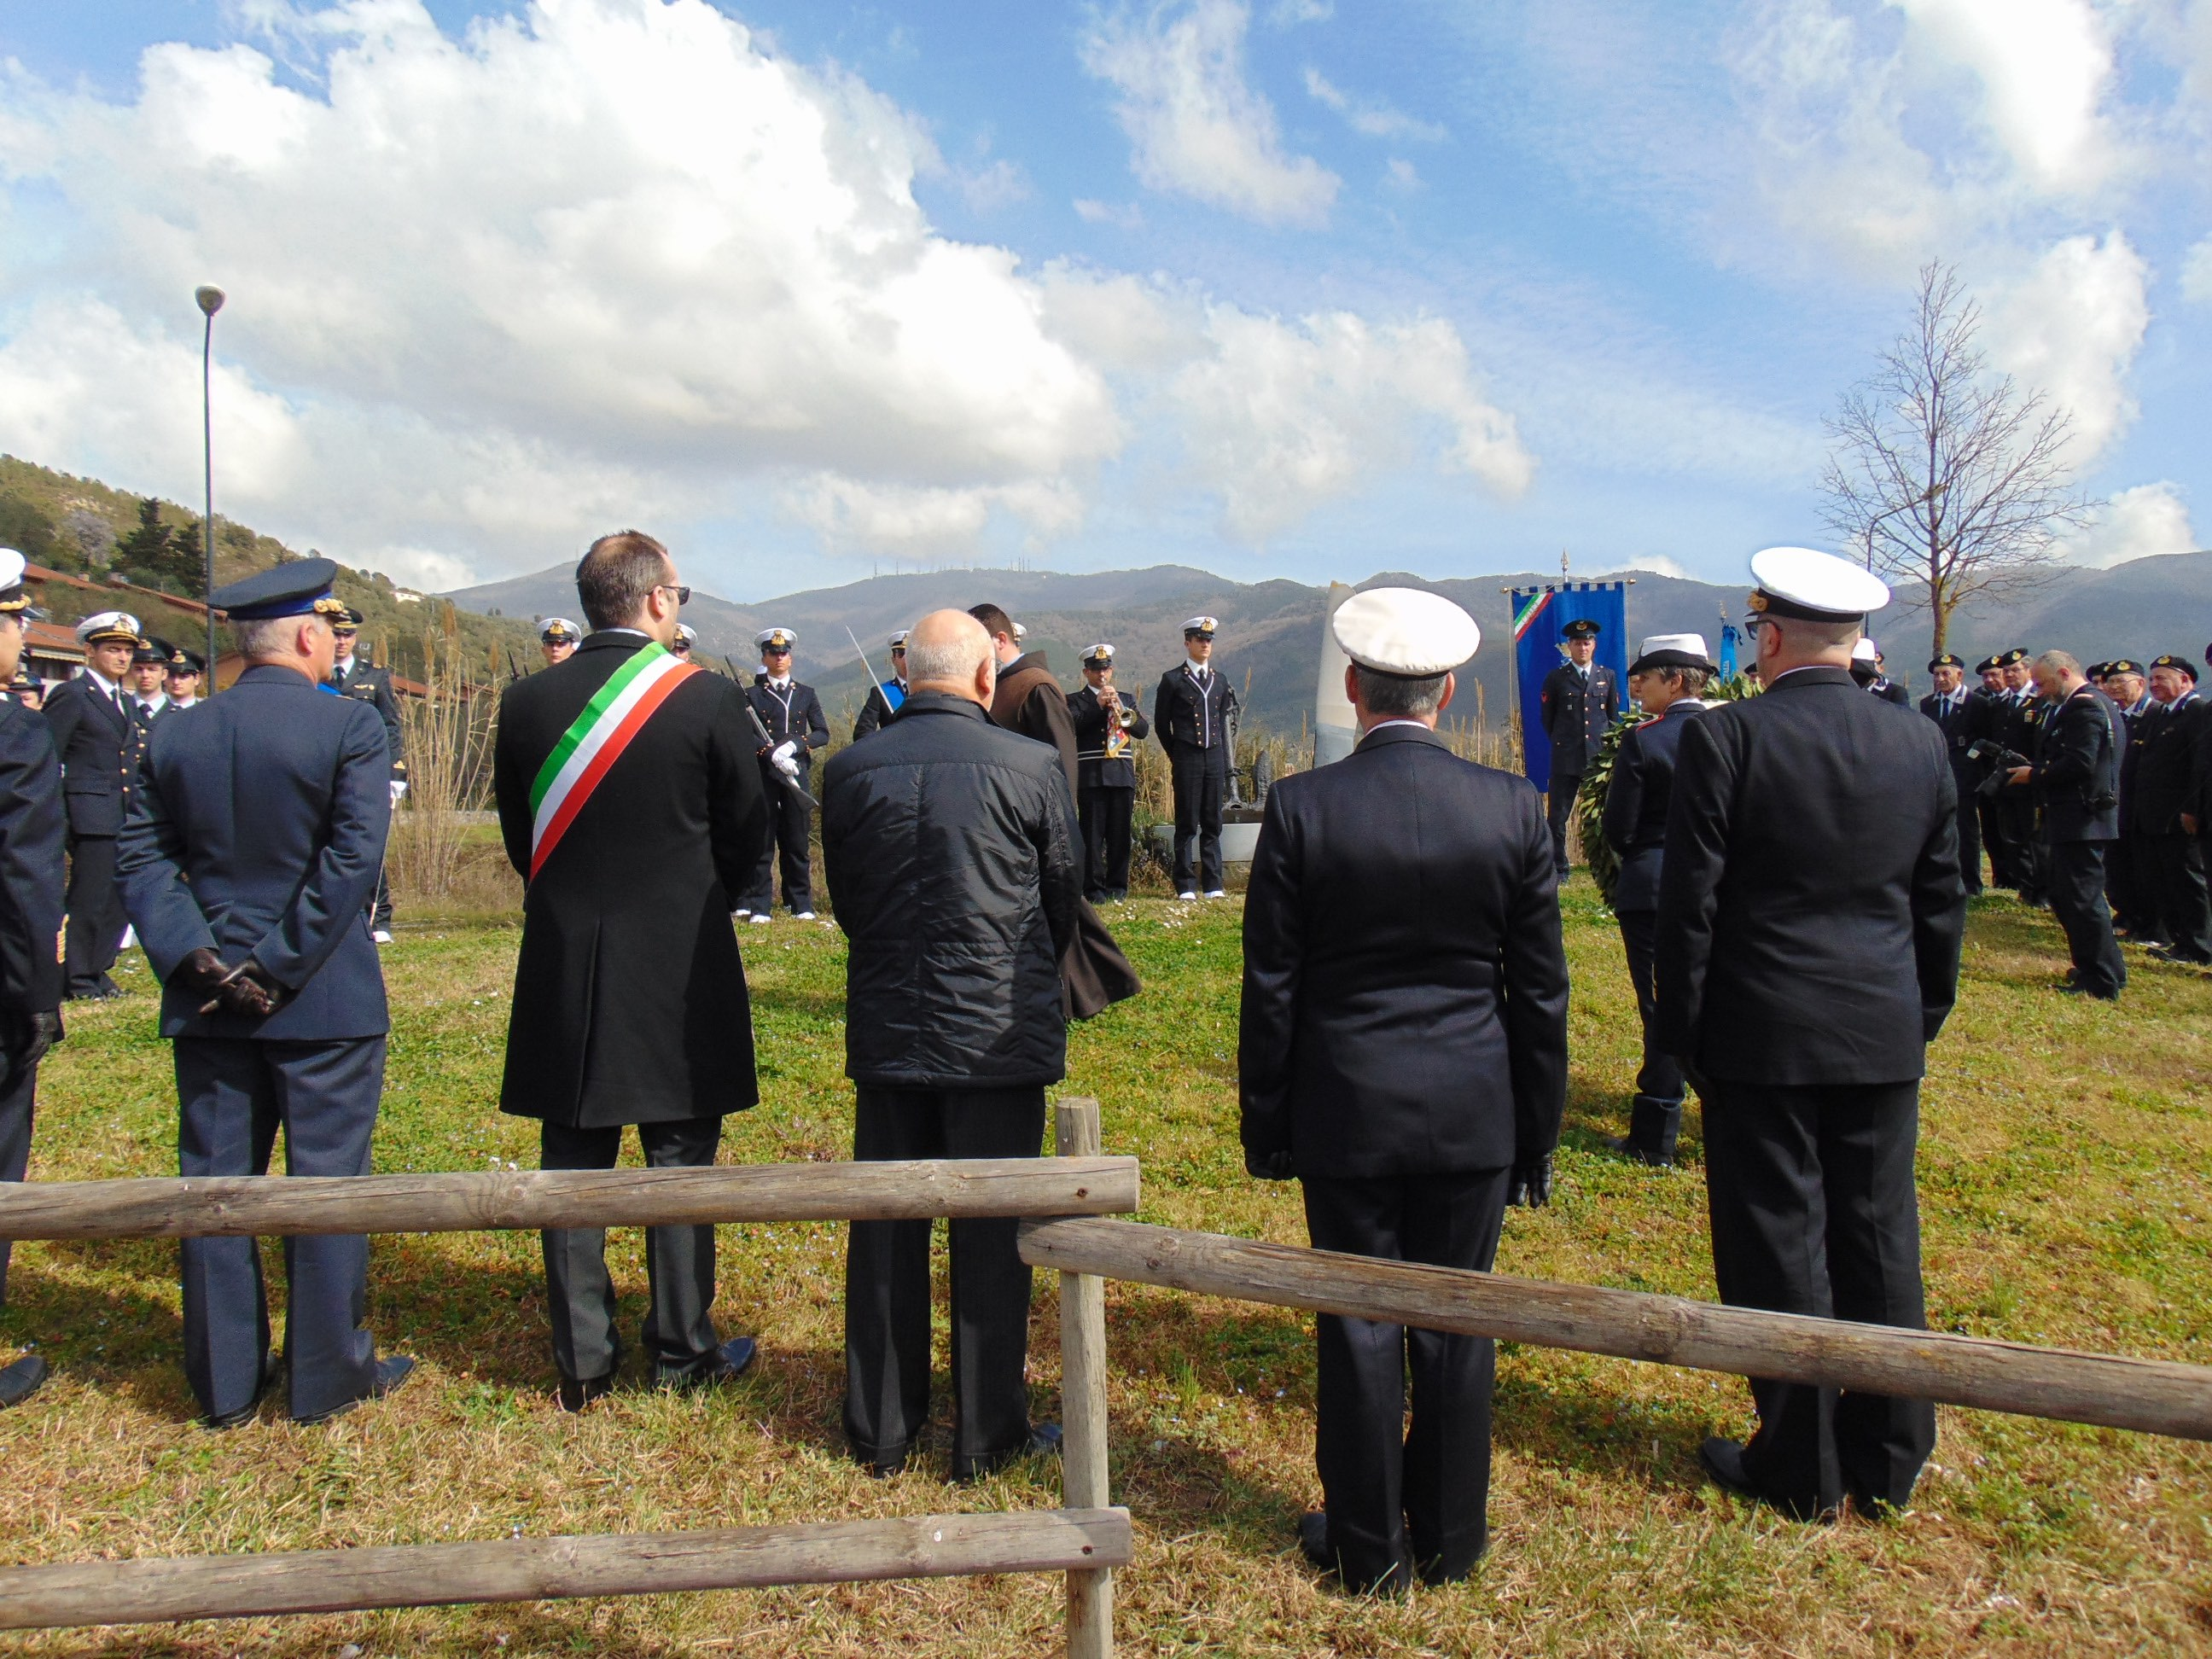 You are browsing images from the article: Giovedì 3 marzo 2016 - Cerimonia